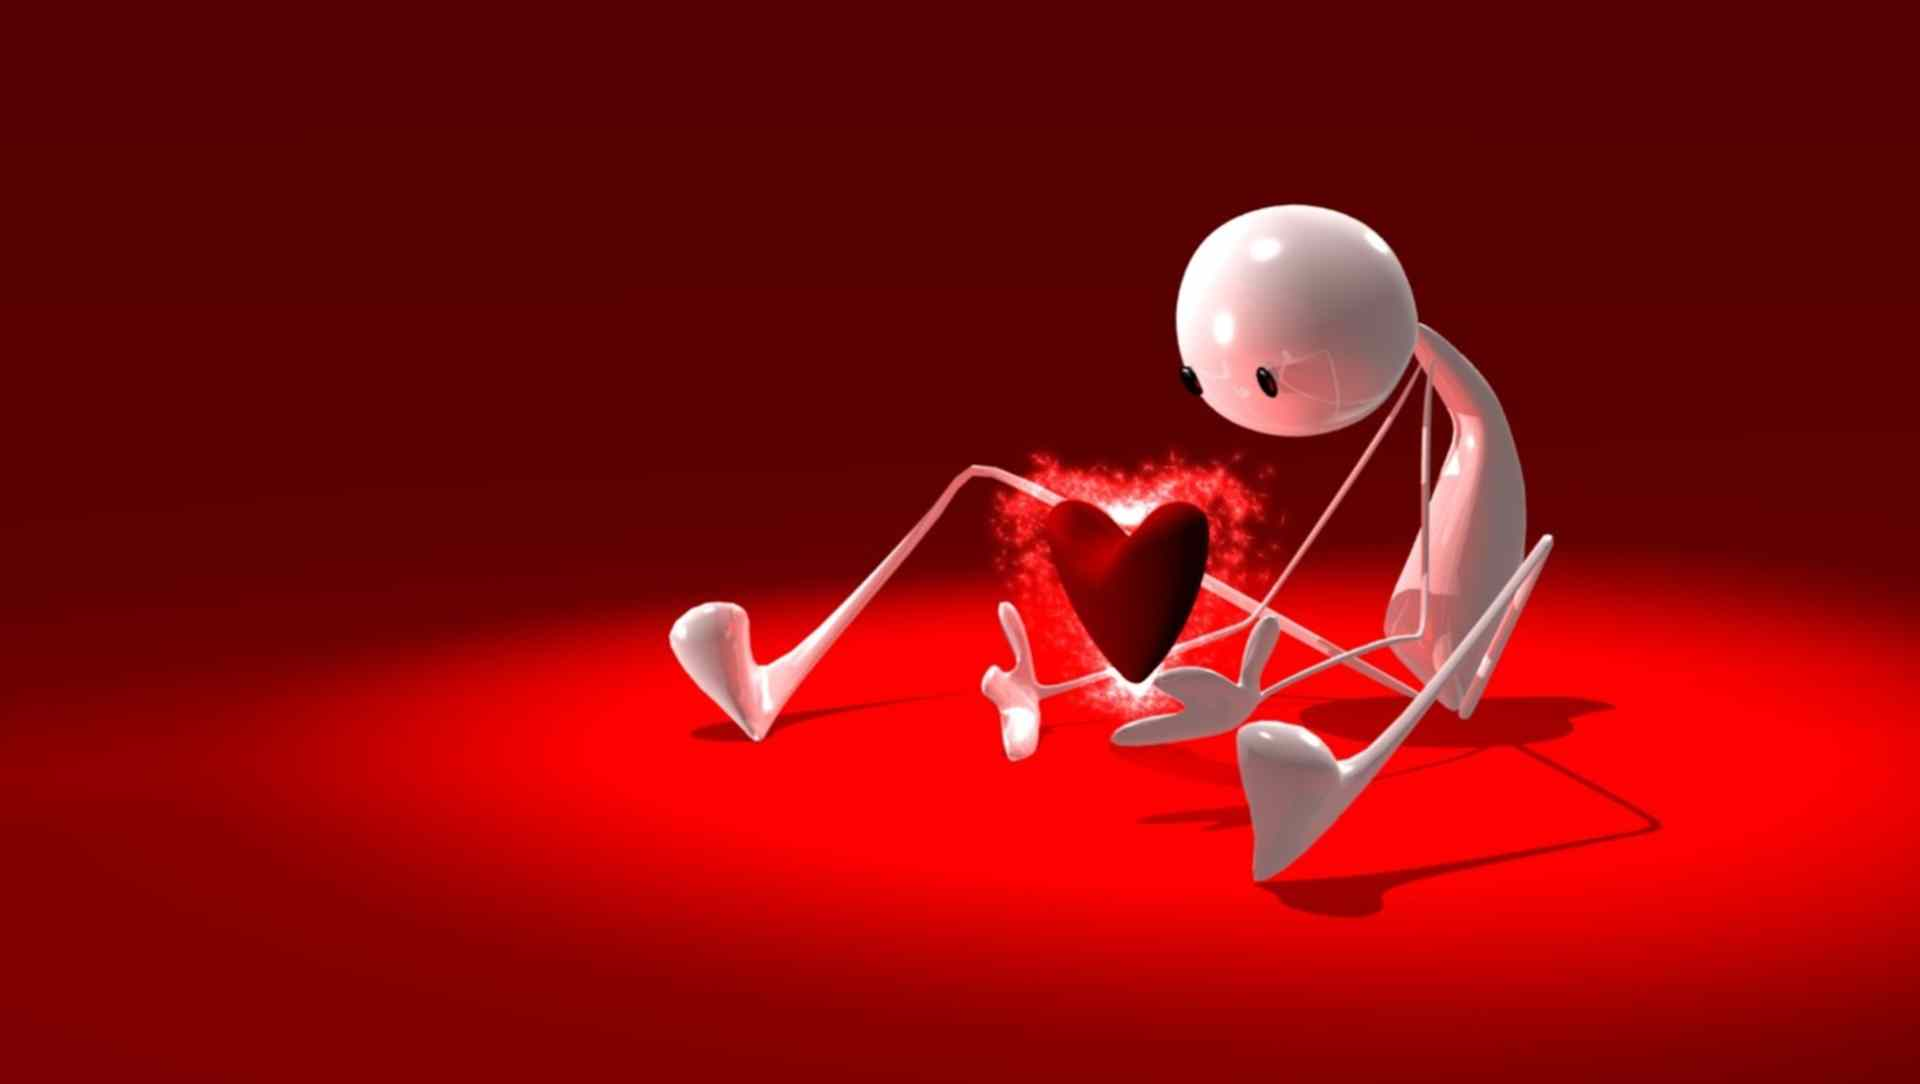 animated love wallpapers for facebook 39677 hd wallpaper backgrounds download animated love wallpapers for facebook